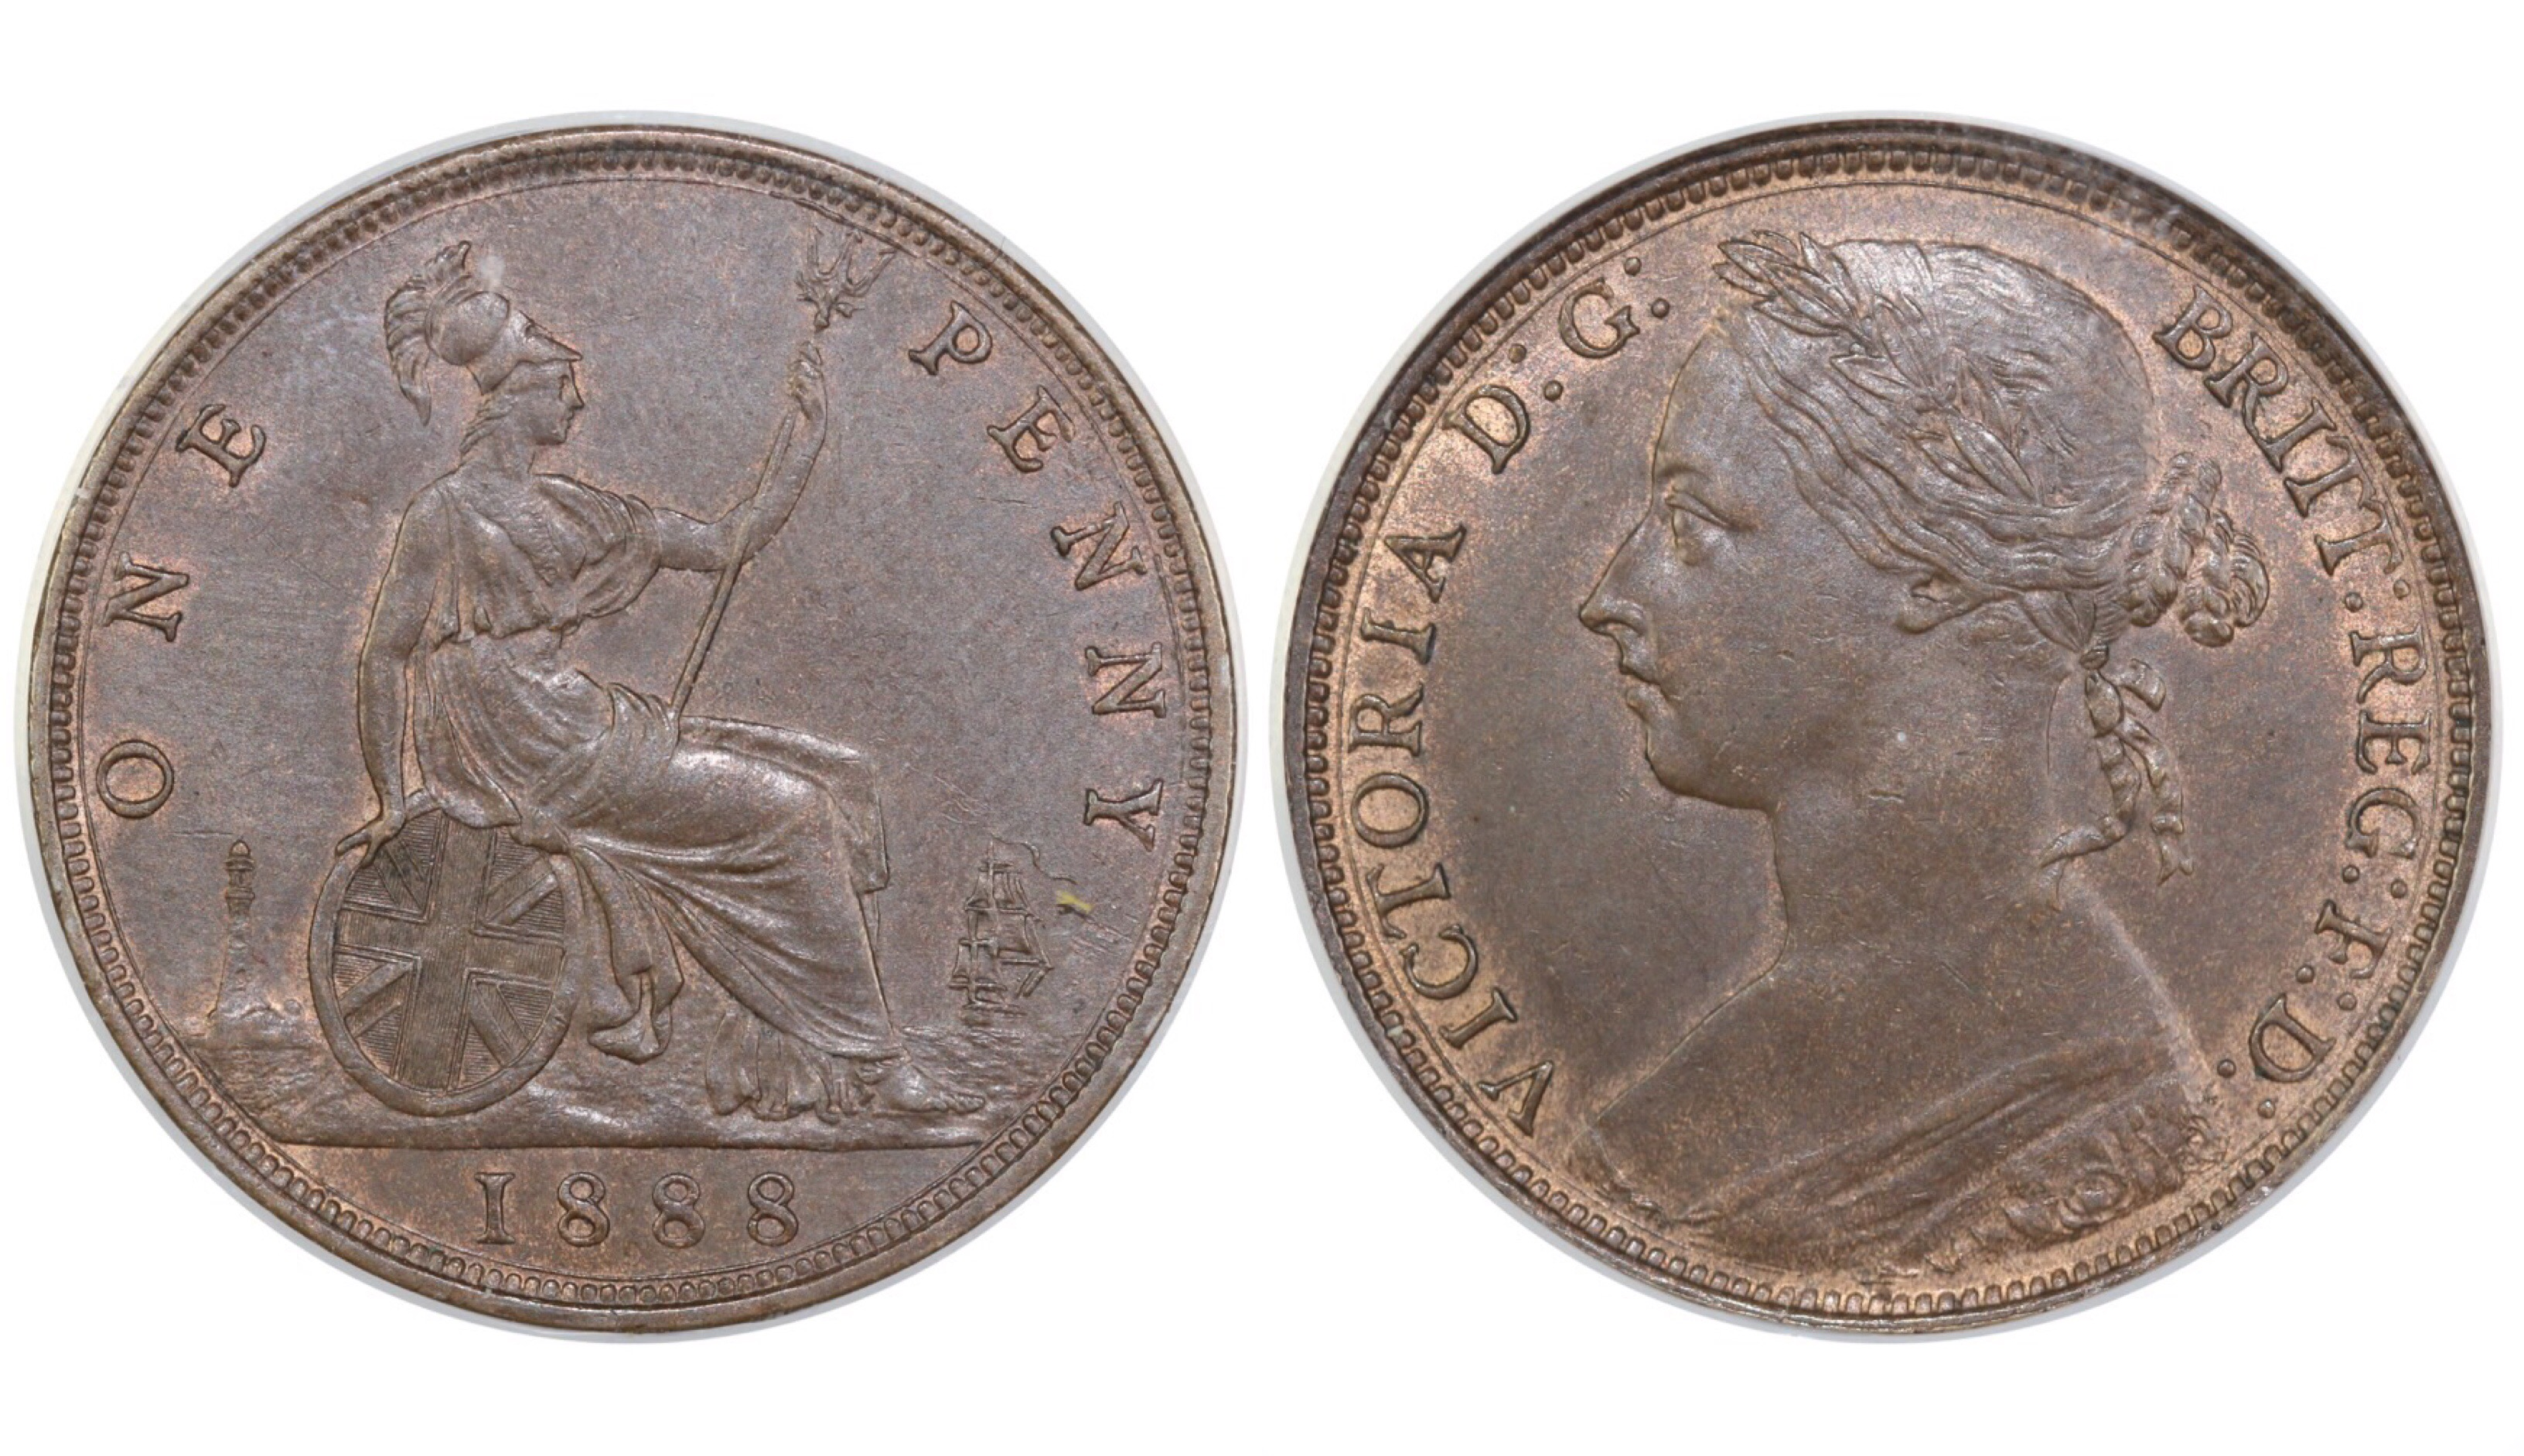 1888 Penny, Missing serif to I's in Victoria, CGS 65, CGS variety 2, UIN 21043